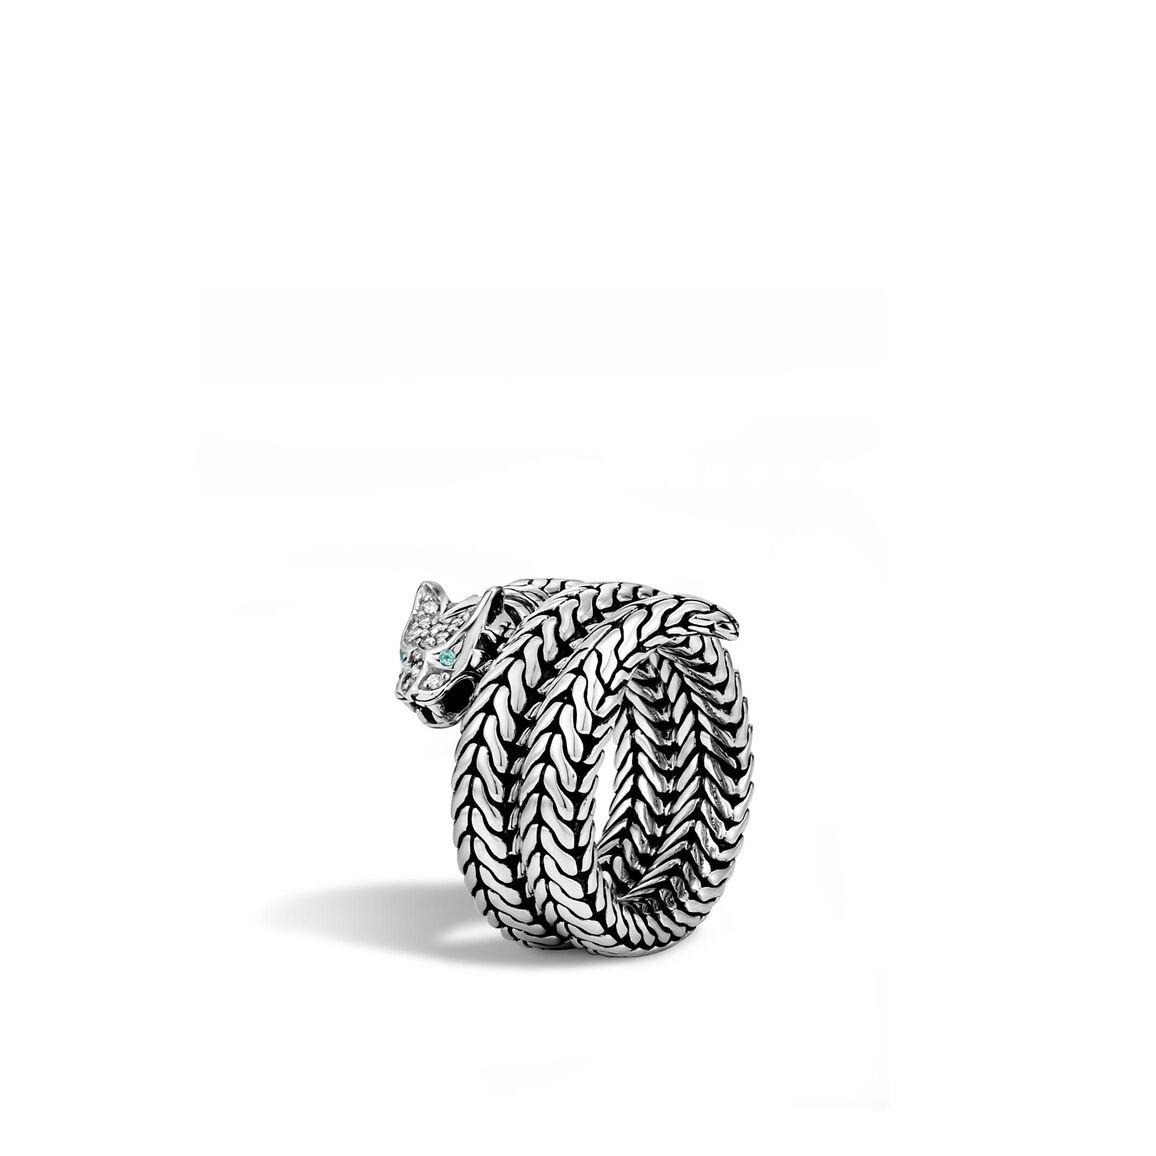 Legends Macan Coil Ring in Silver with Diamonds